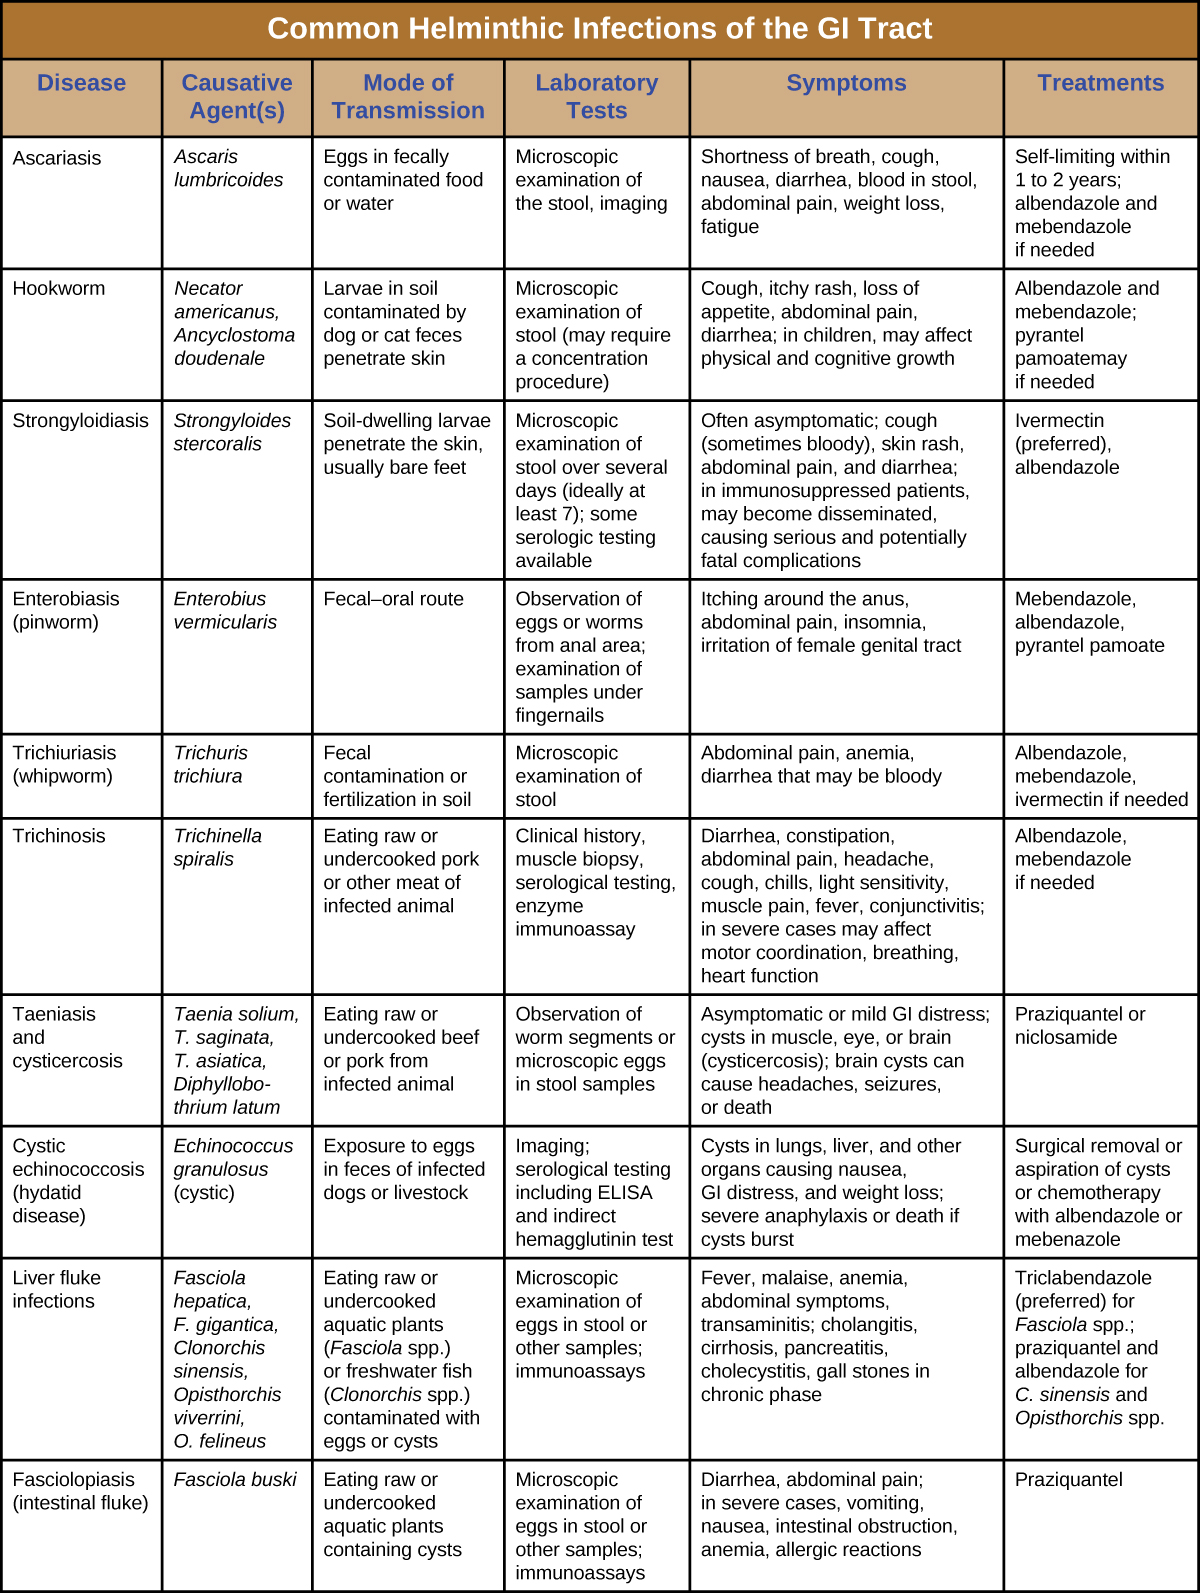 treatment of helminth infections